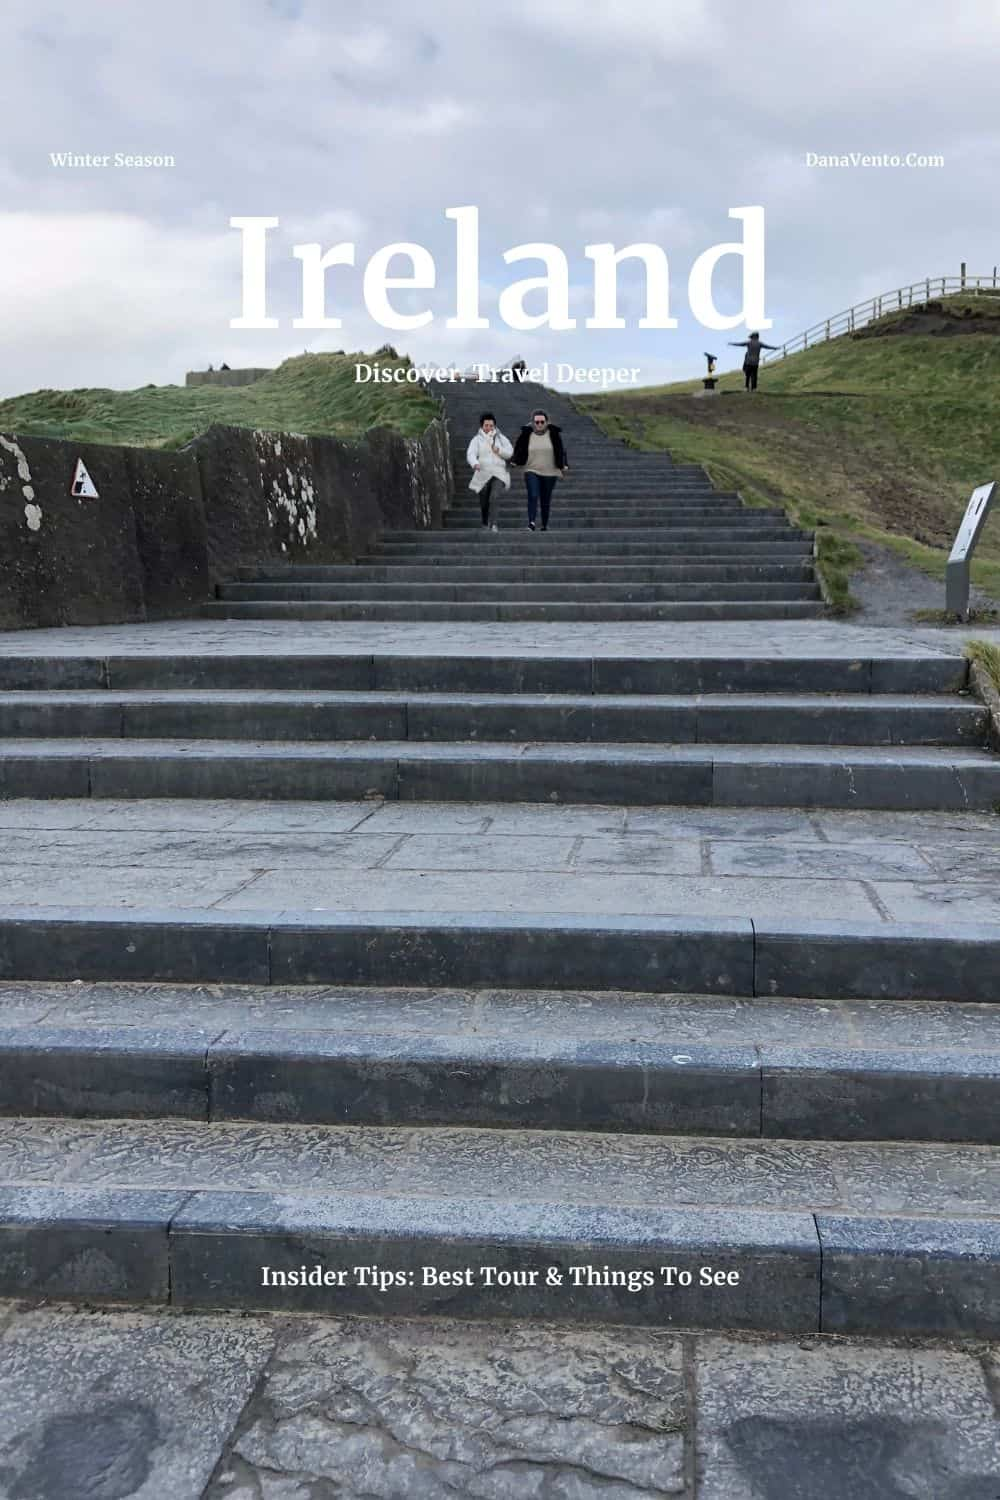 Ireland Cliffs of Moher Image with steps